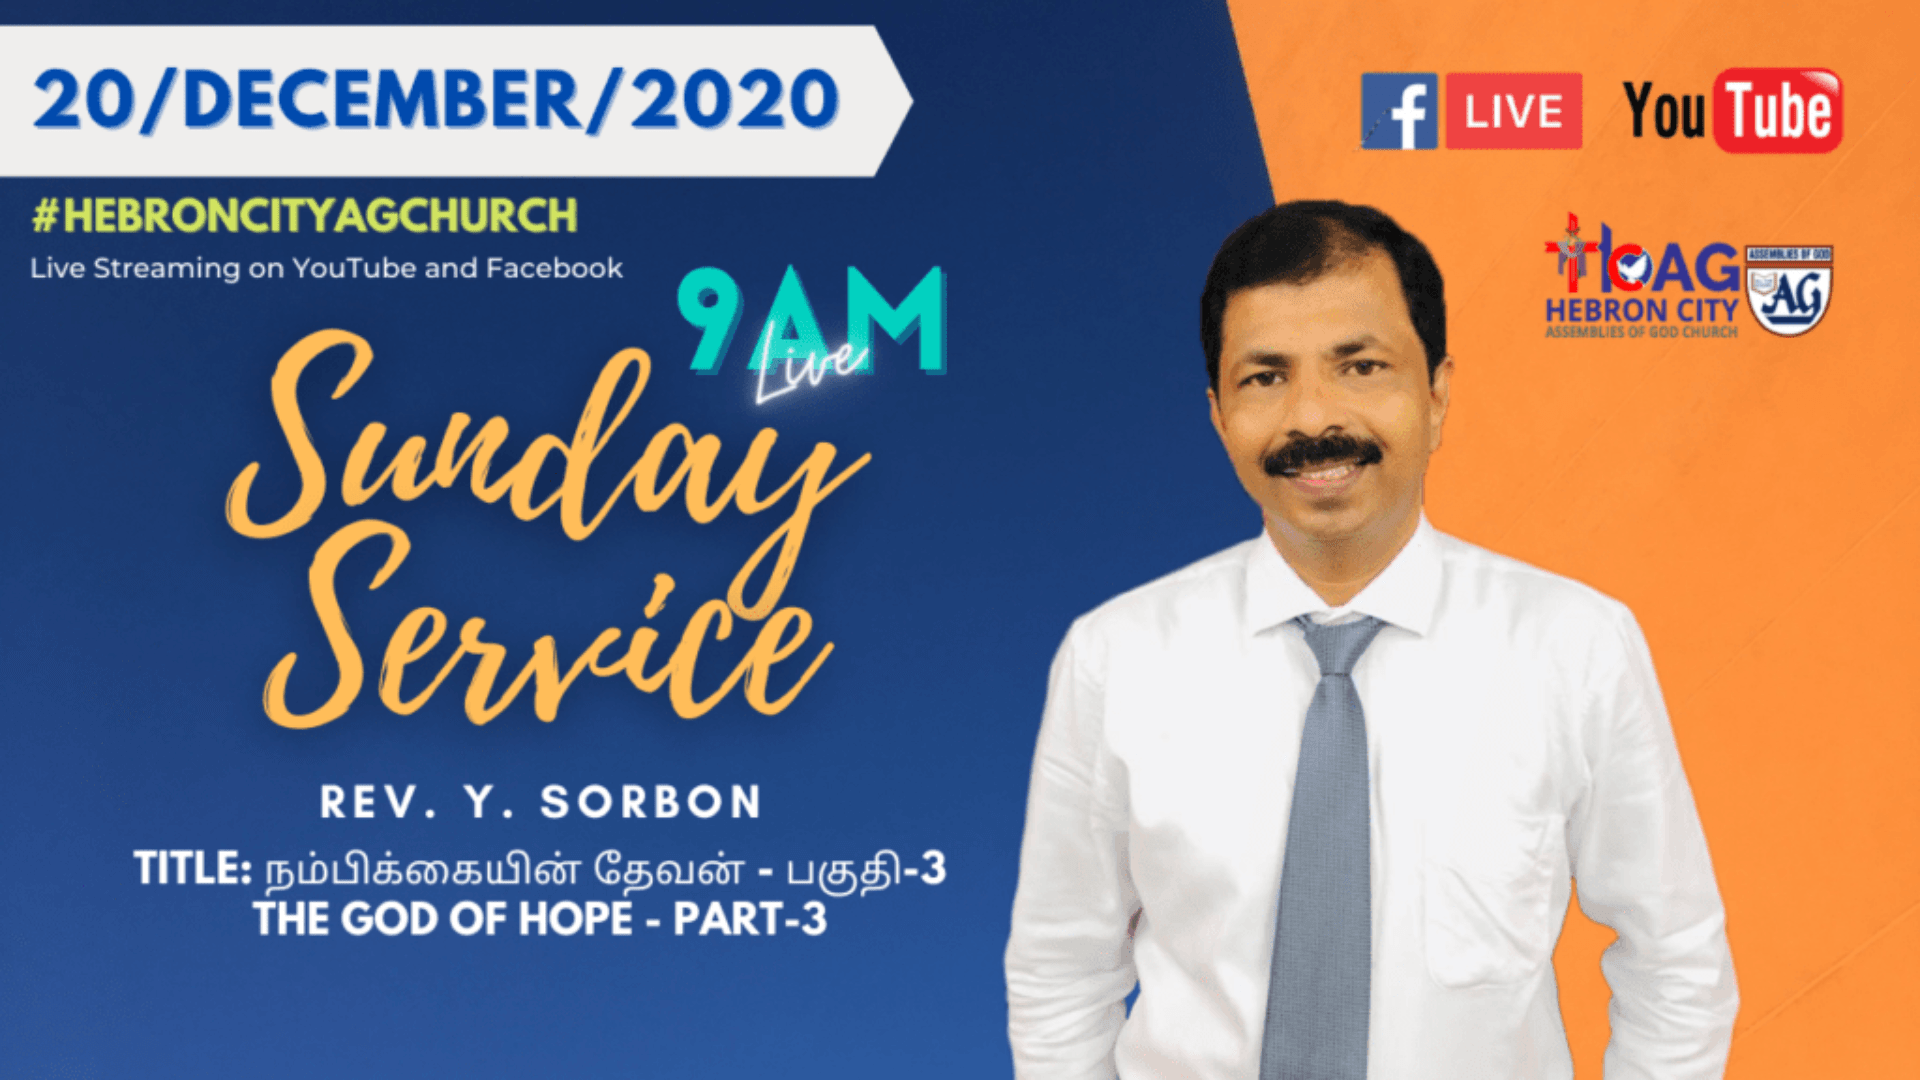 20/December/2020 | Online Sunday Service in Tamil | The God of Hope Part-3 | Hebron City AG Church